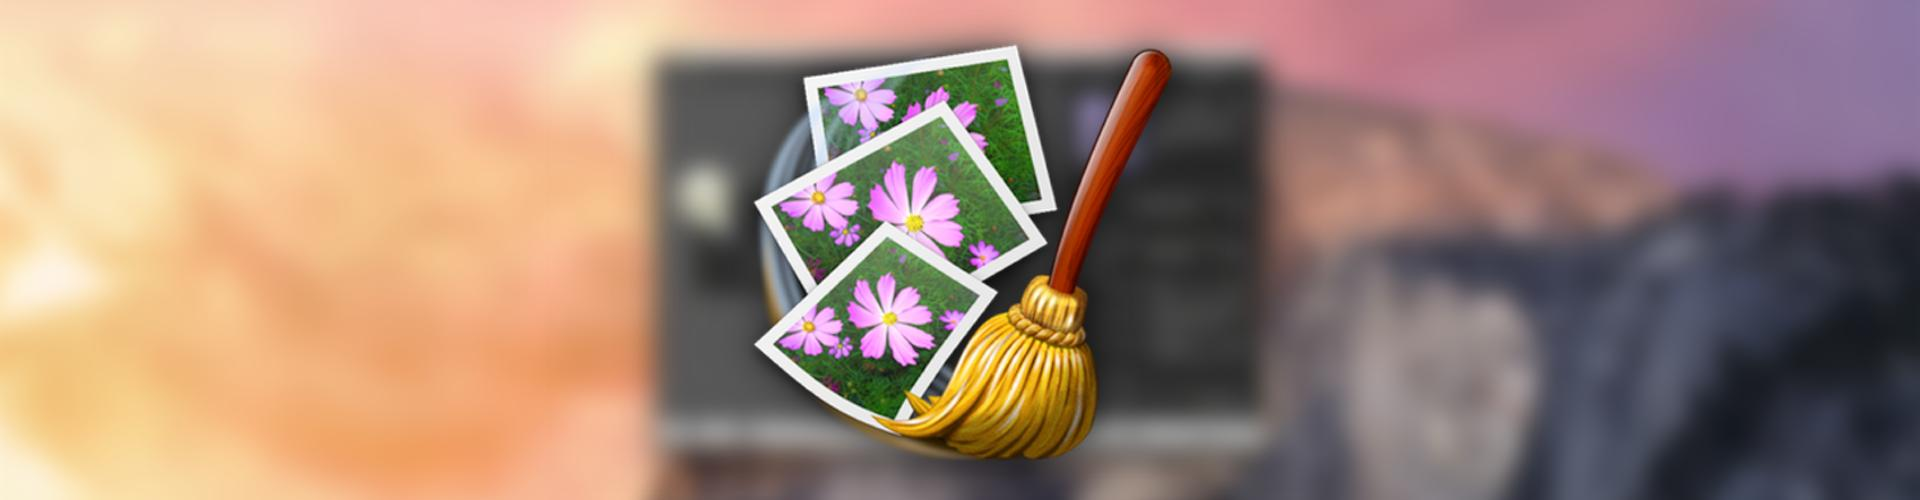 Giveaway: Win a copy of PhotoSweeper 2 for Mac